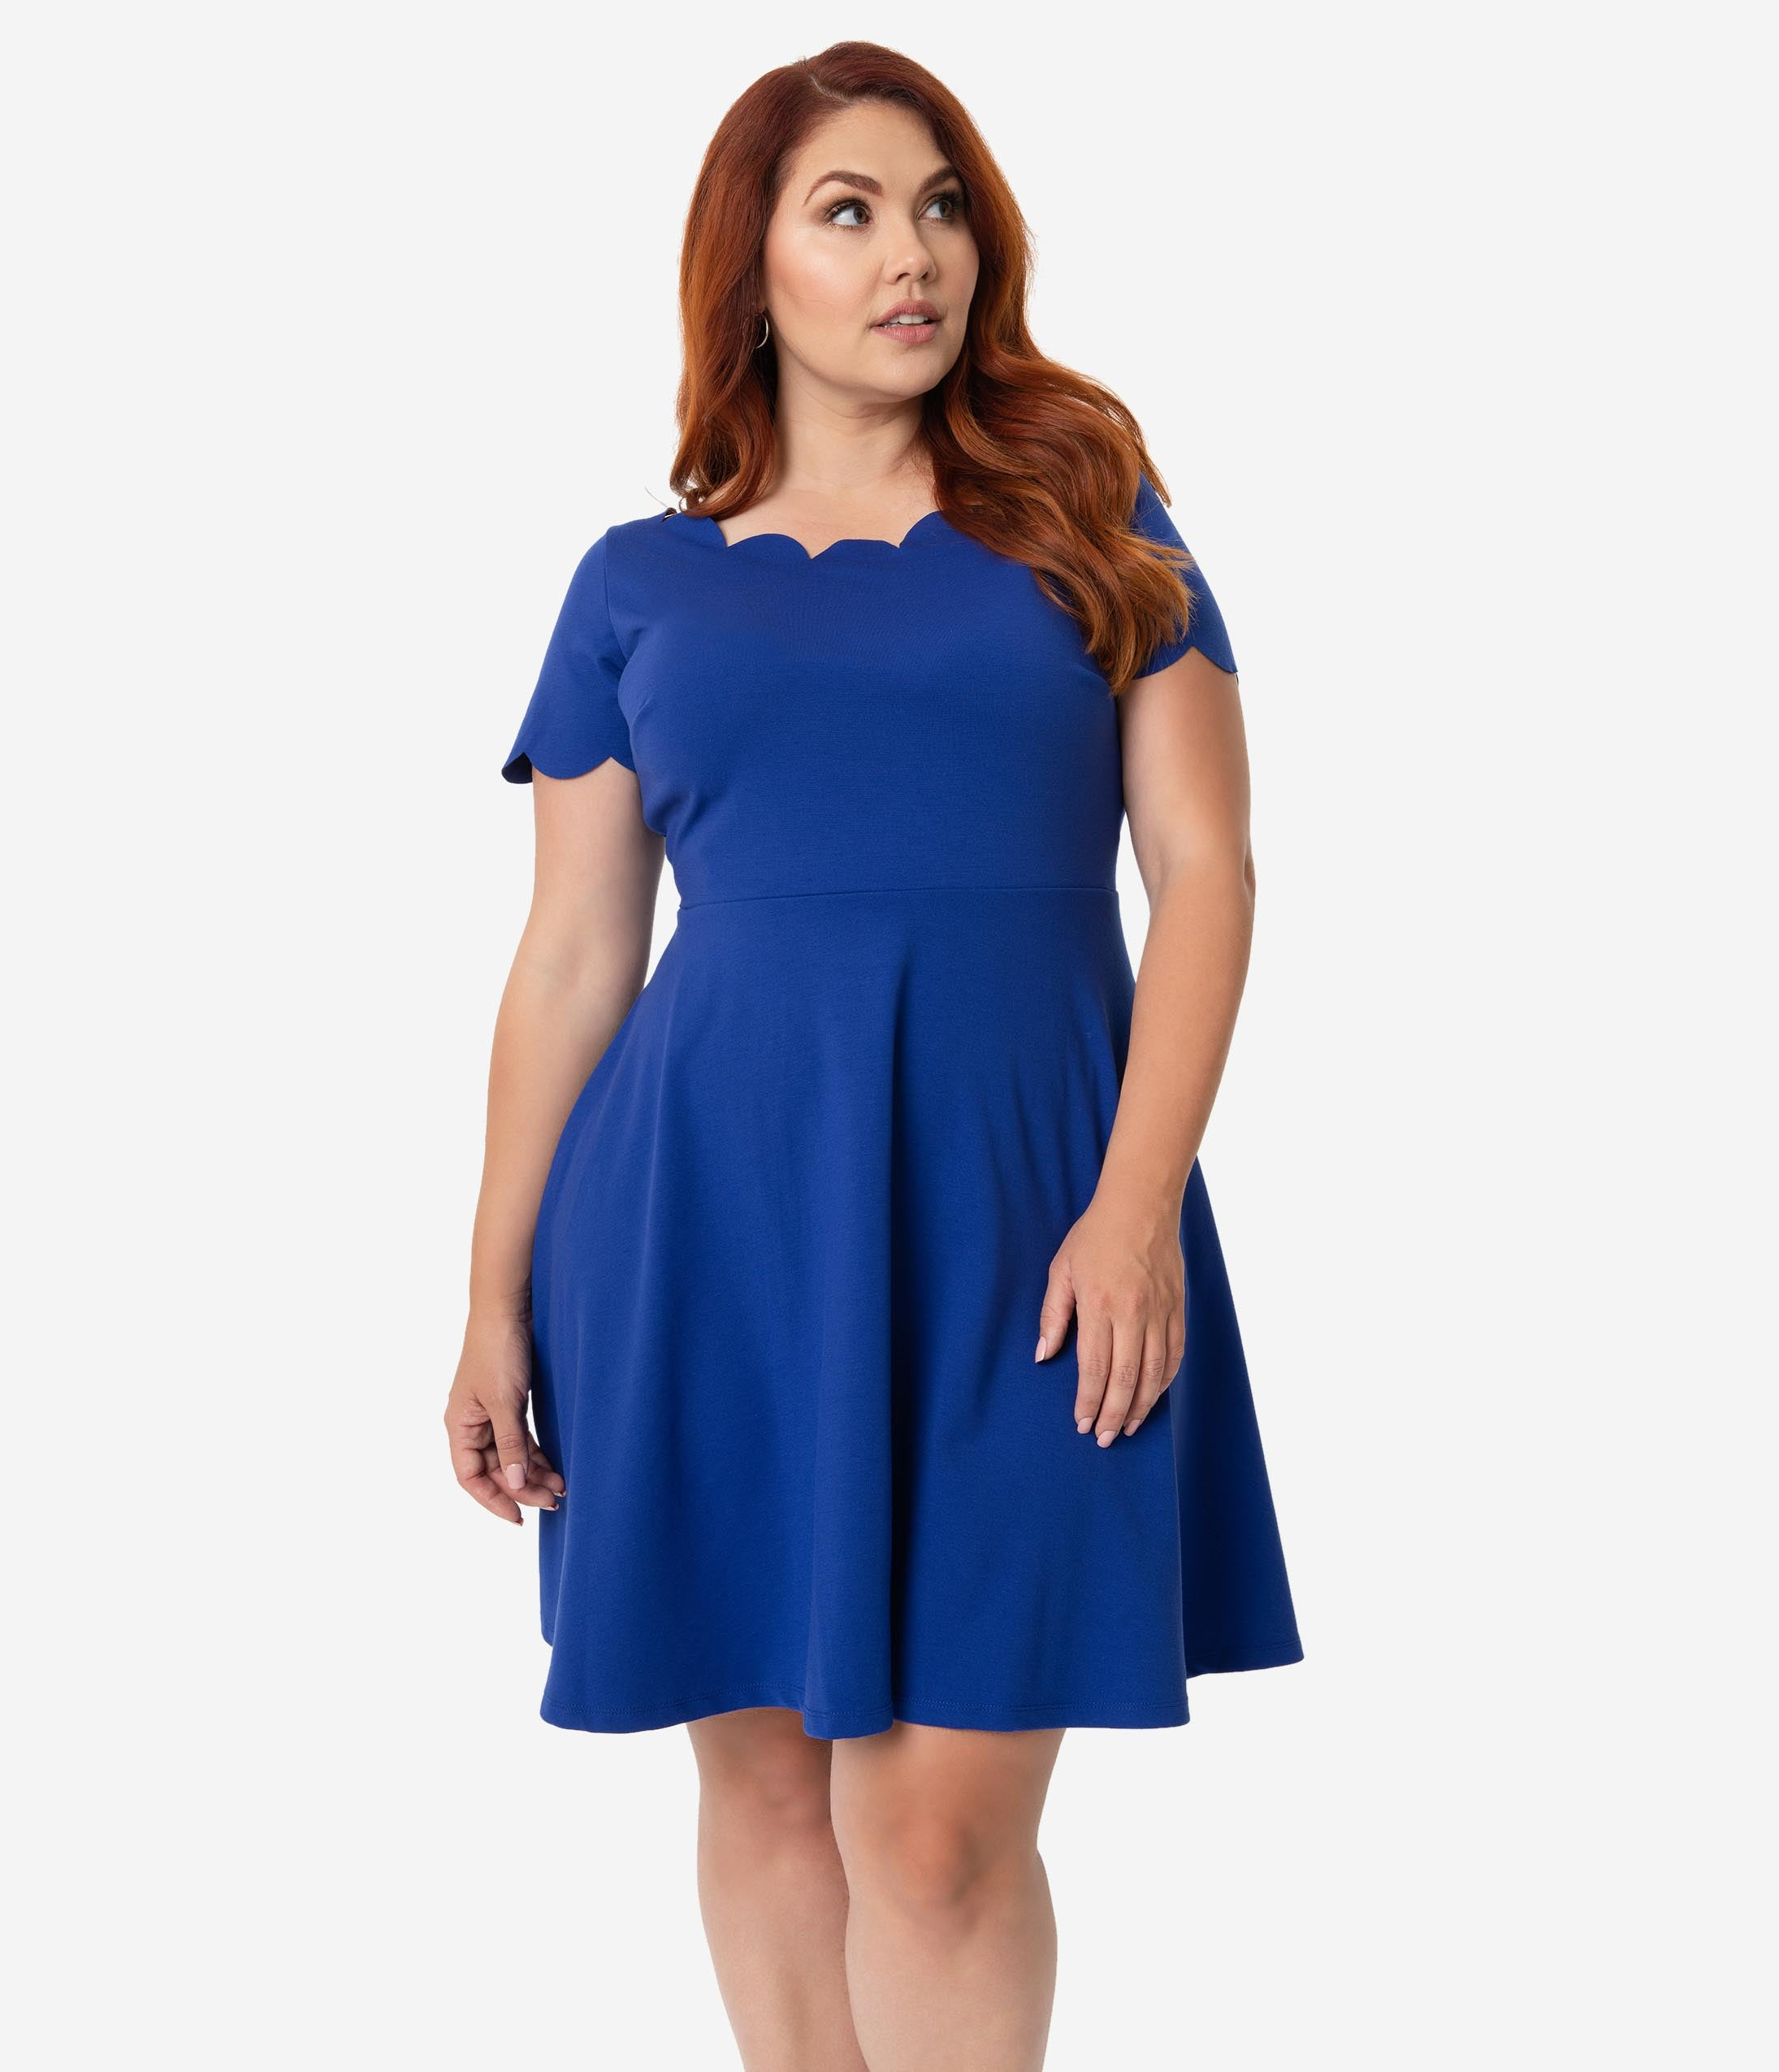 09bb71423648 Smak Parlour Plus Size Royal Blue Stretch Scalloped Short Sleeve Charmed  Fit & Flare Dress